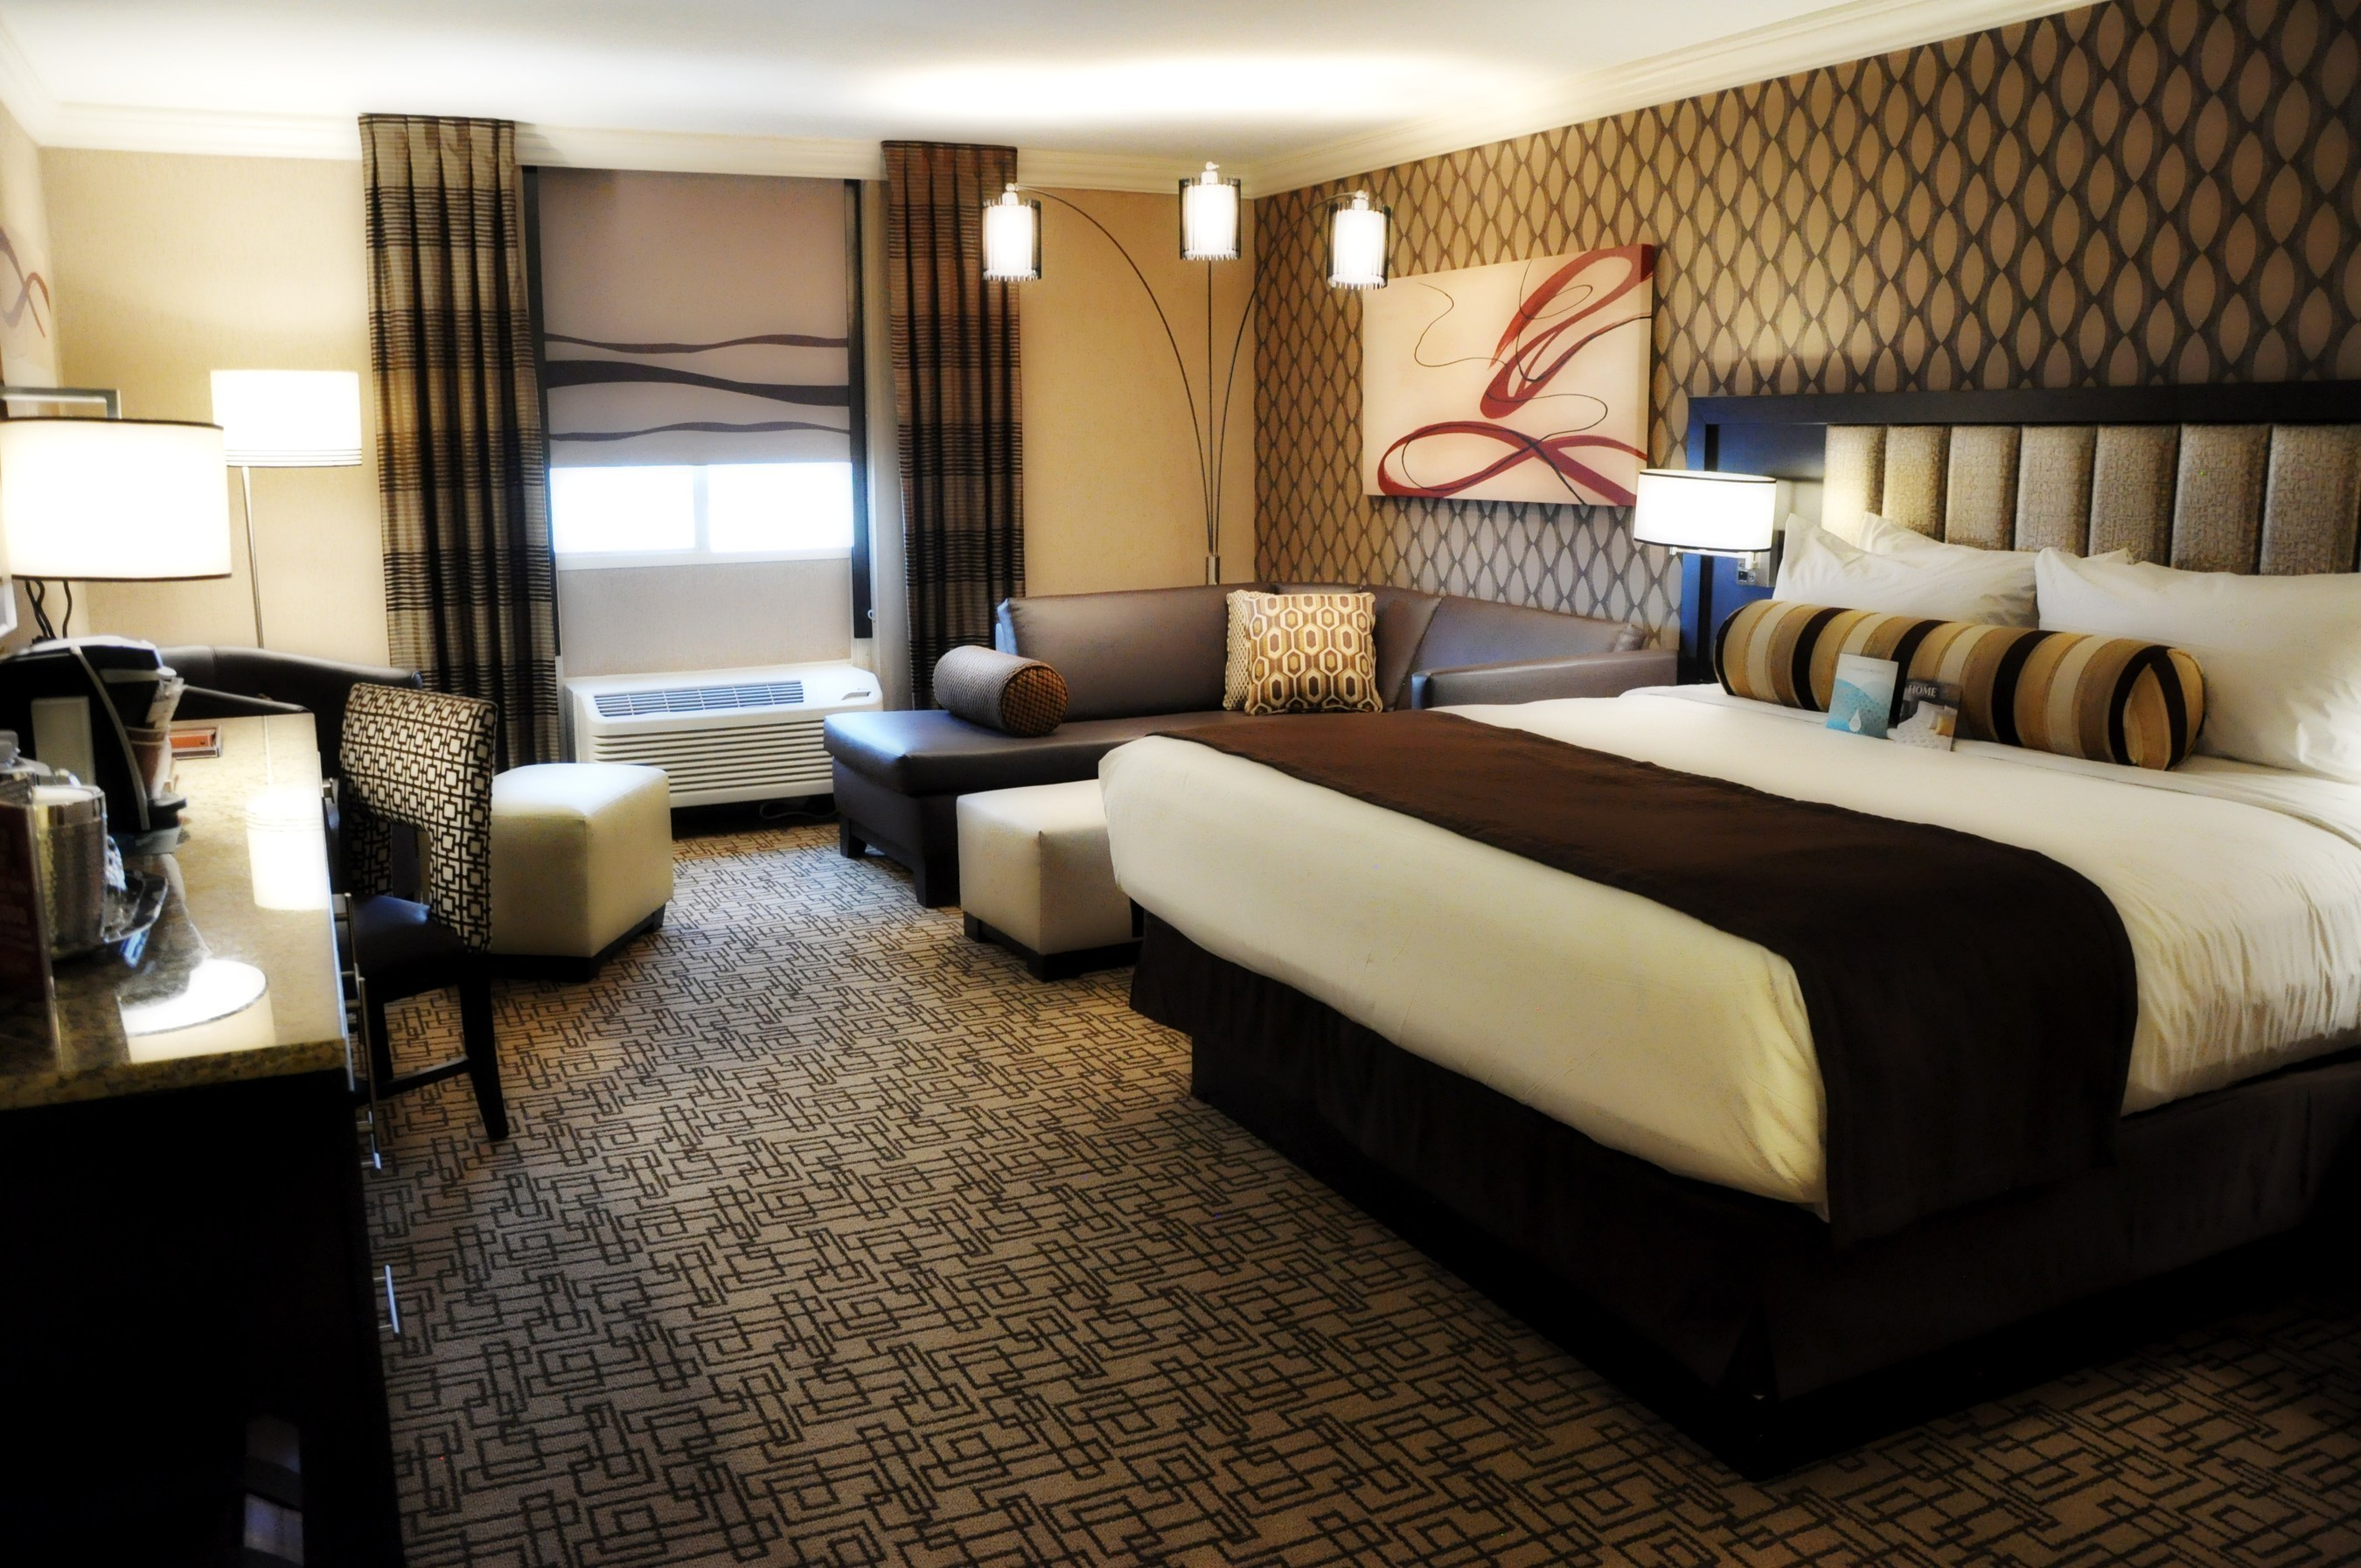 15 Million Renovation Completed At The Golden Nugget Las